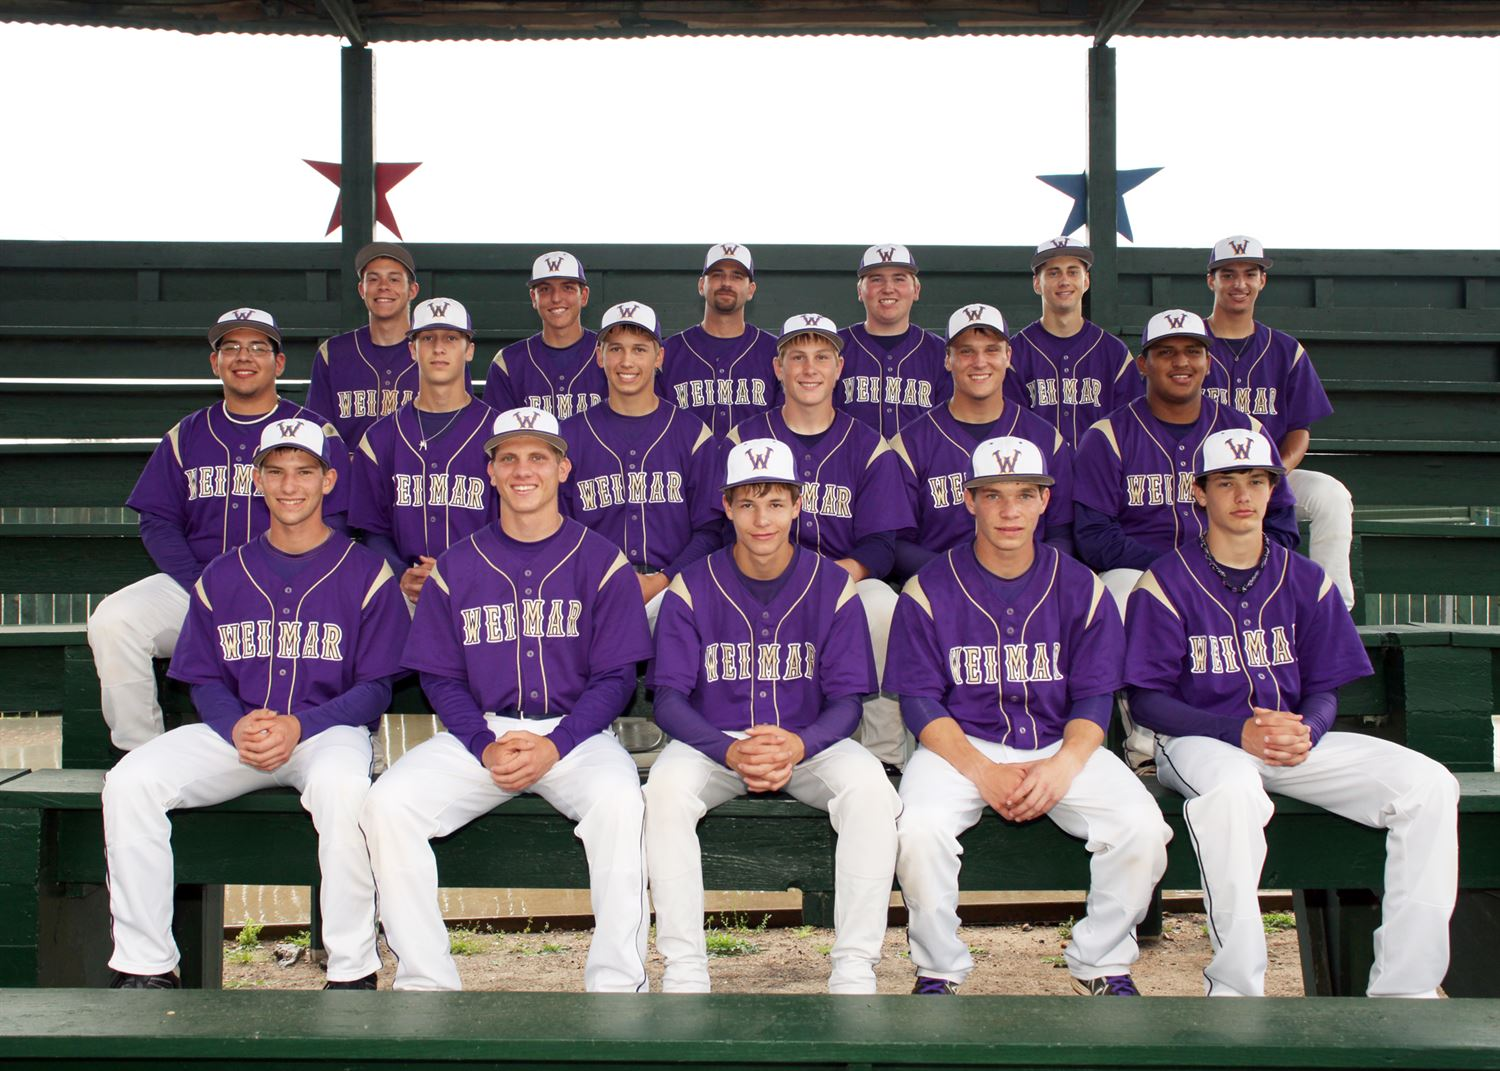 Weimar High School - Weimar Baseball